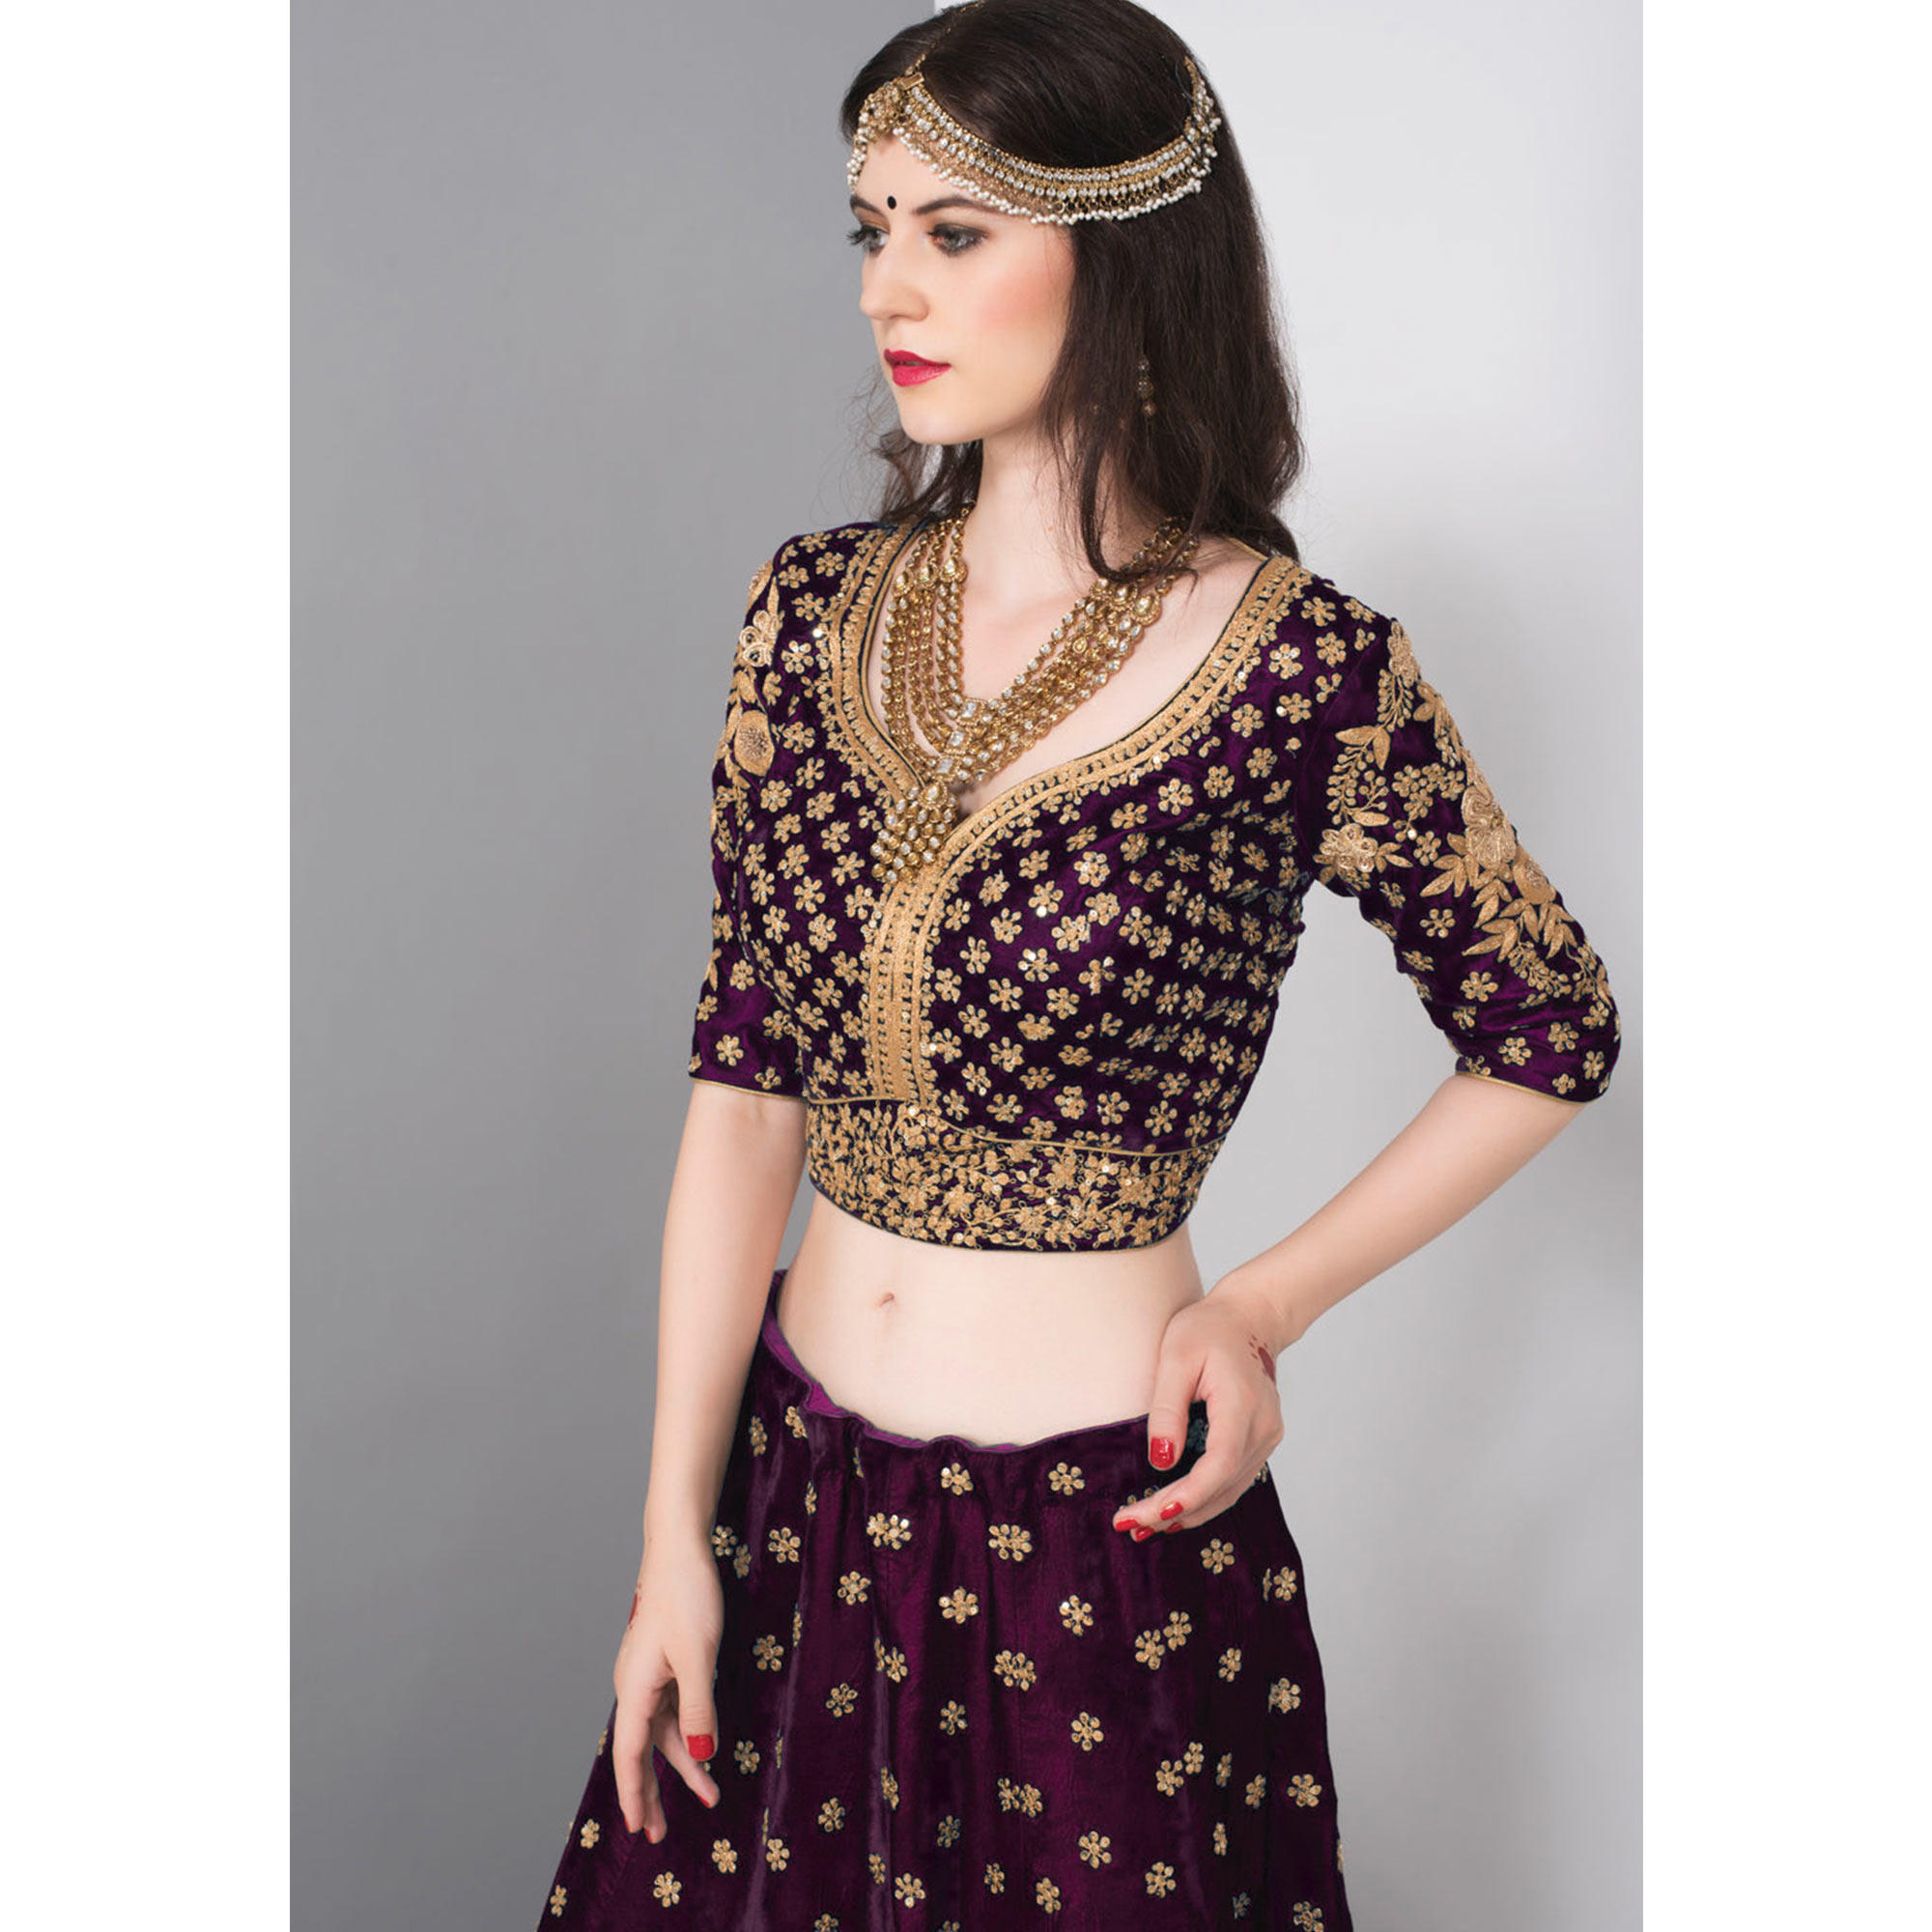 Marvellous Purple Colored Partywear Embroidered Pure Velvet Lehenga Choli